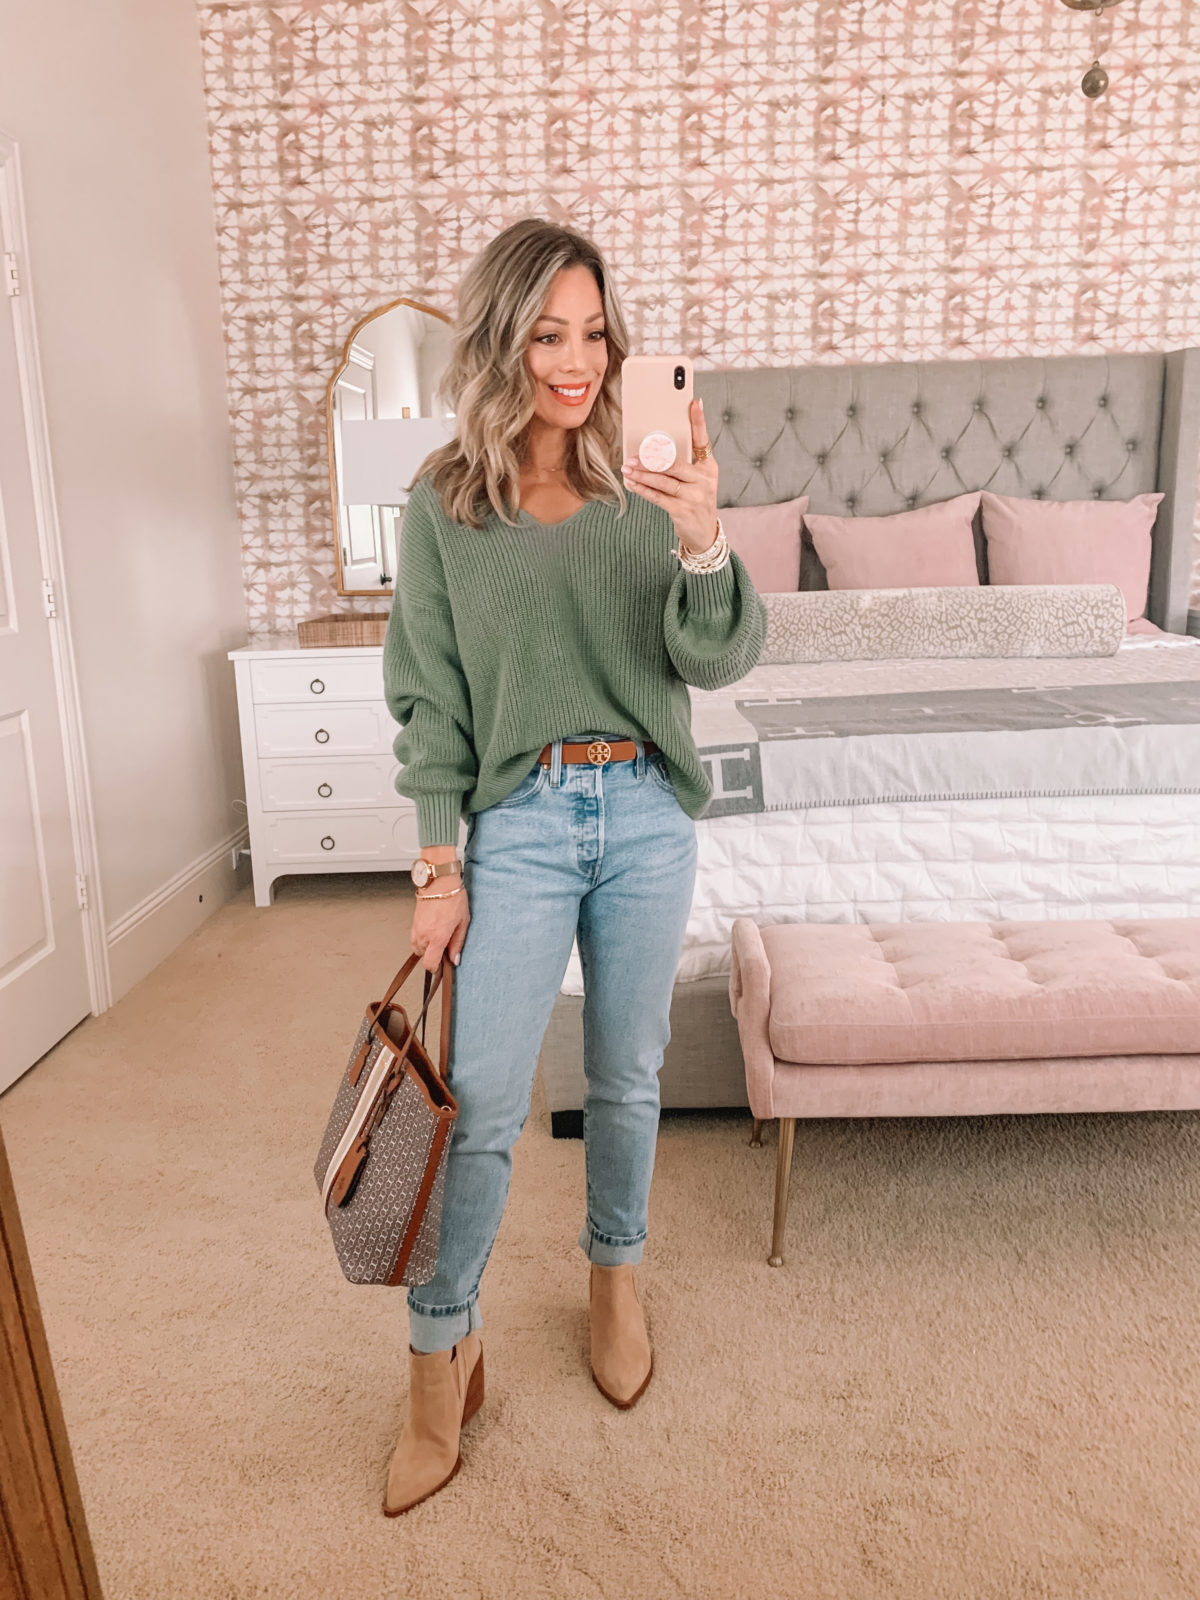 Dressing Room Finds Nordstrom, LOFT, Revolve, Sage Green Sweater, Jeans, Sandals